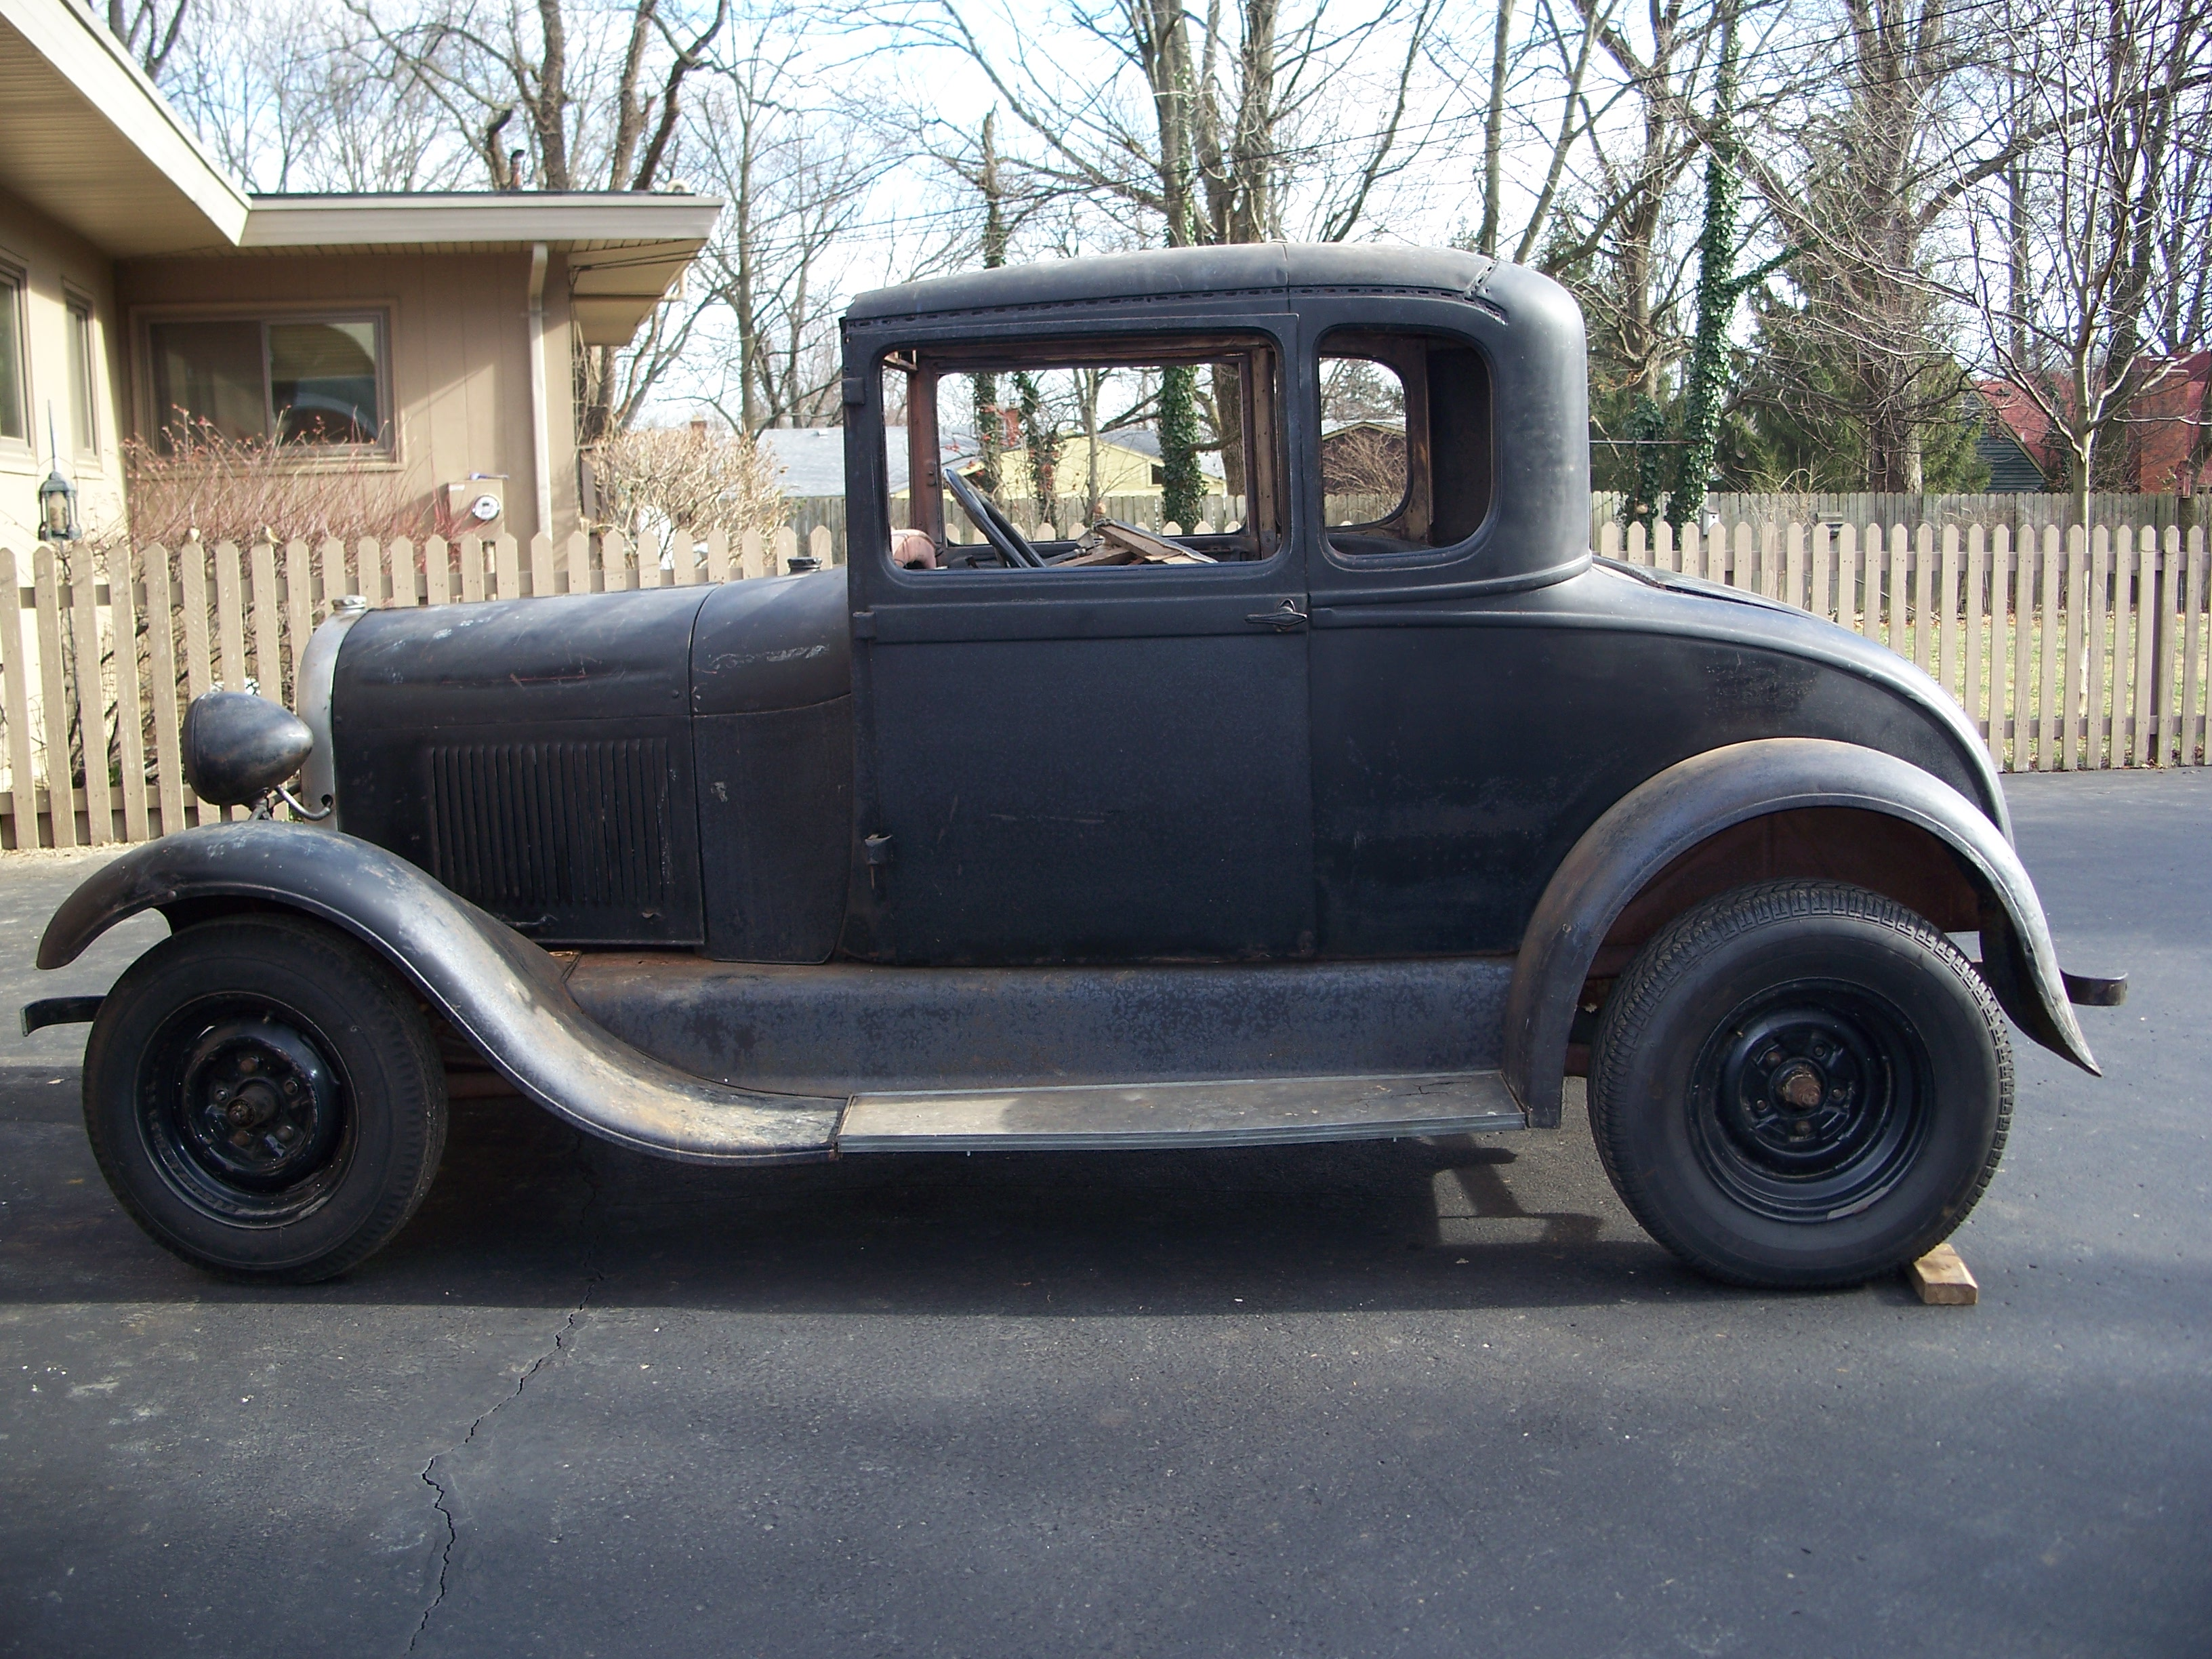 Hot Rods - What did your current Hot Rod look like when you started ...